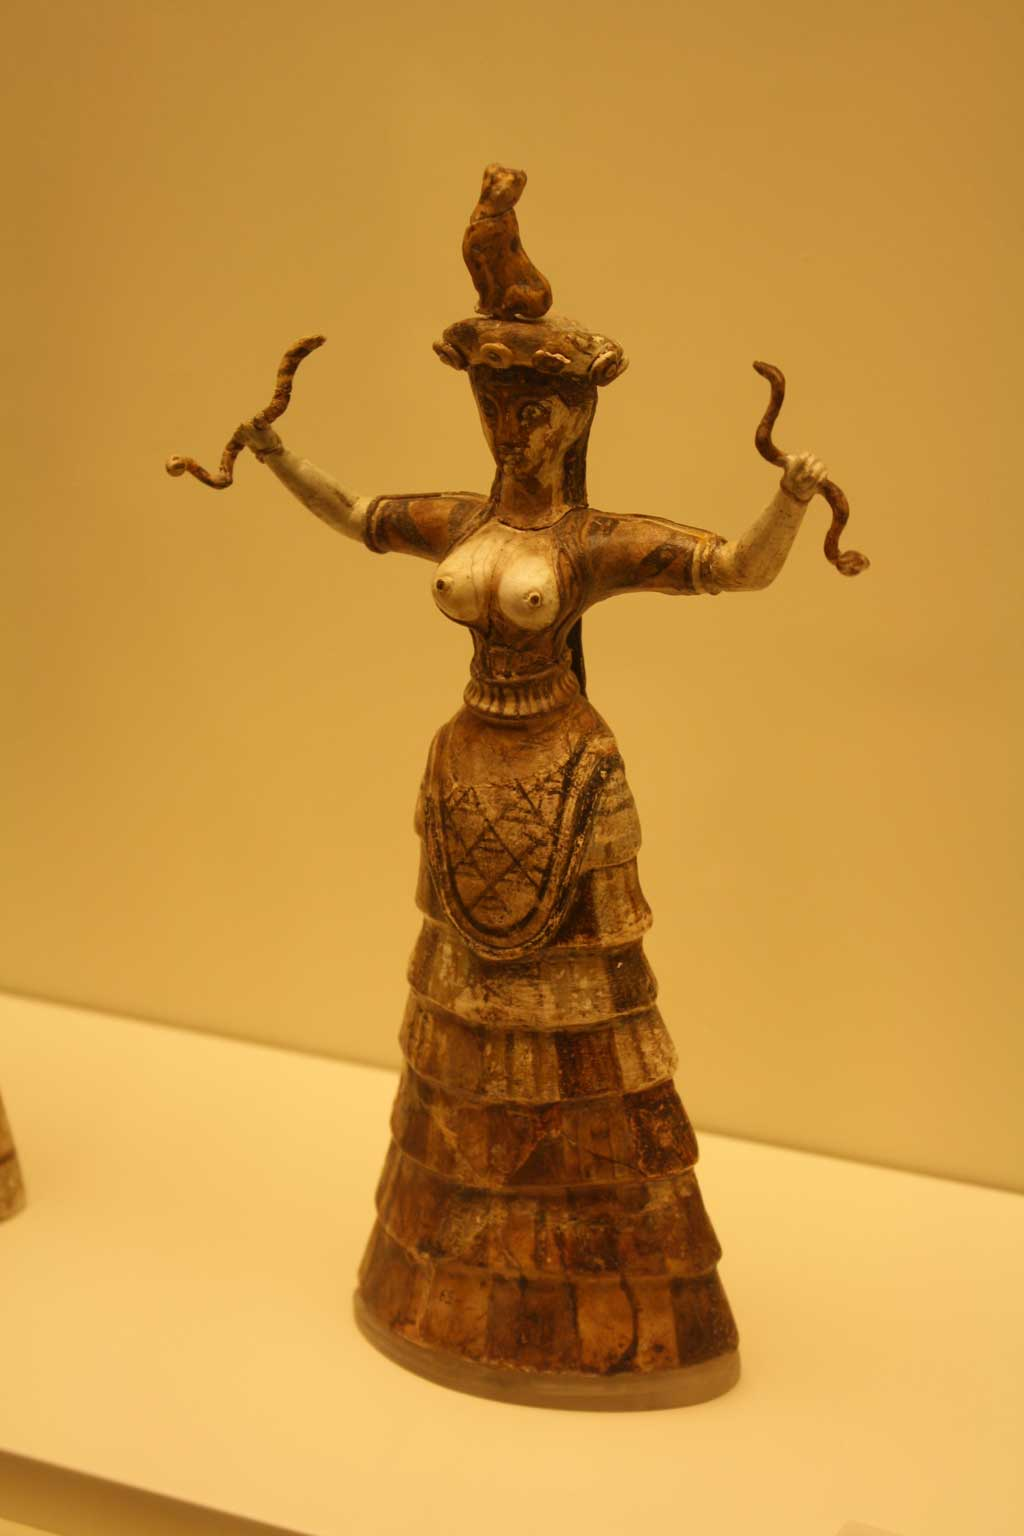 Knossos figurine of a bare-chested woman holding a slithering snake in each hand.